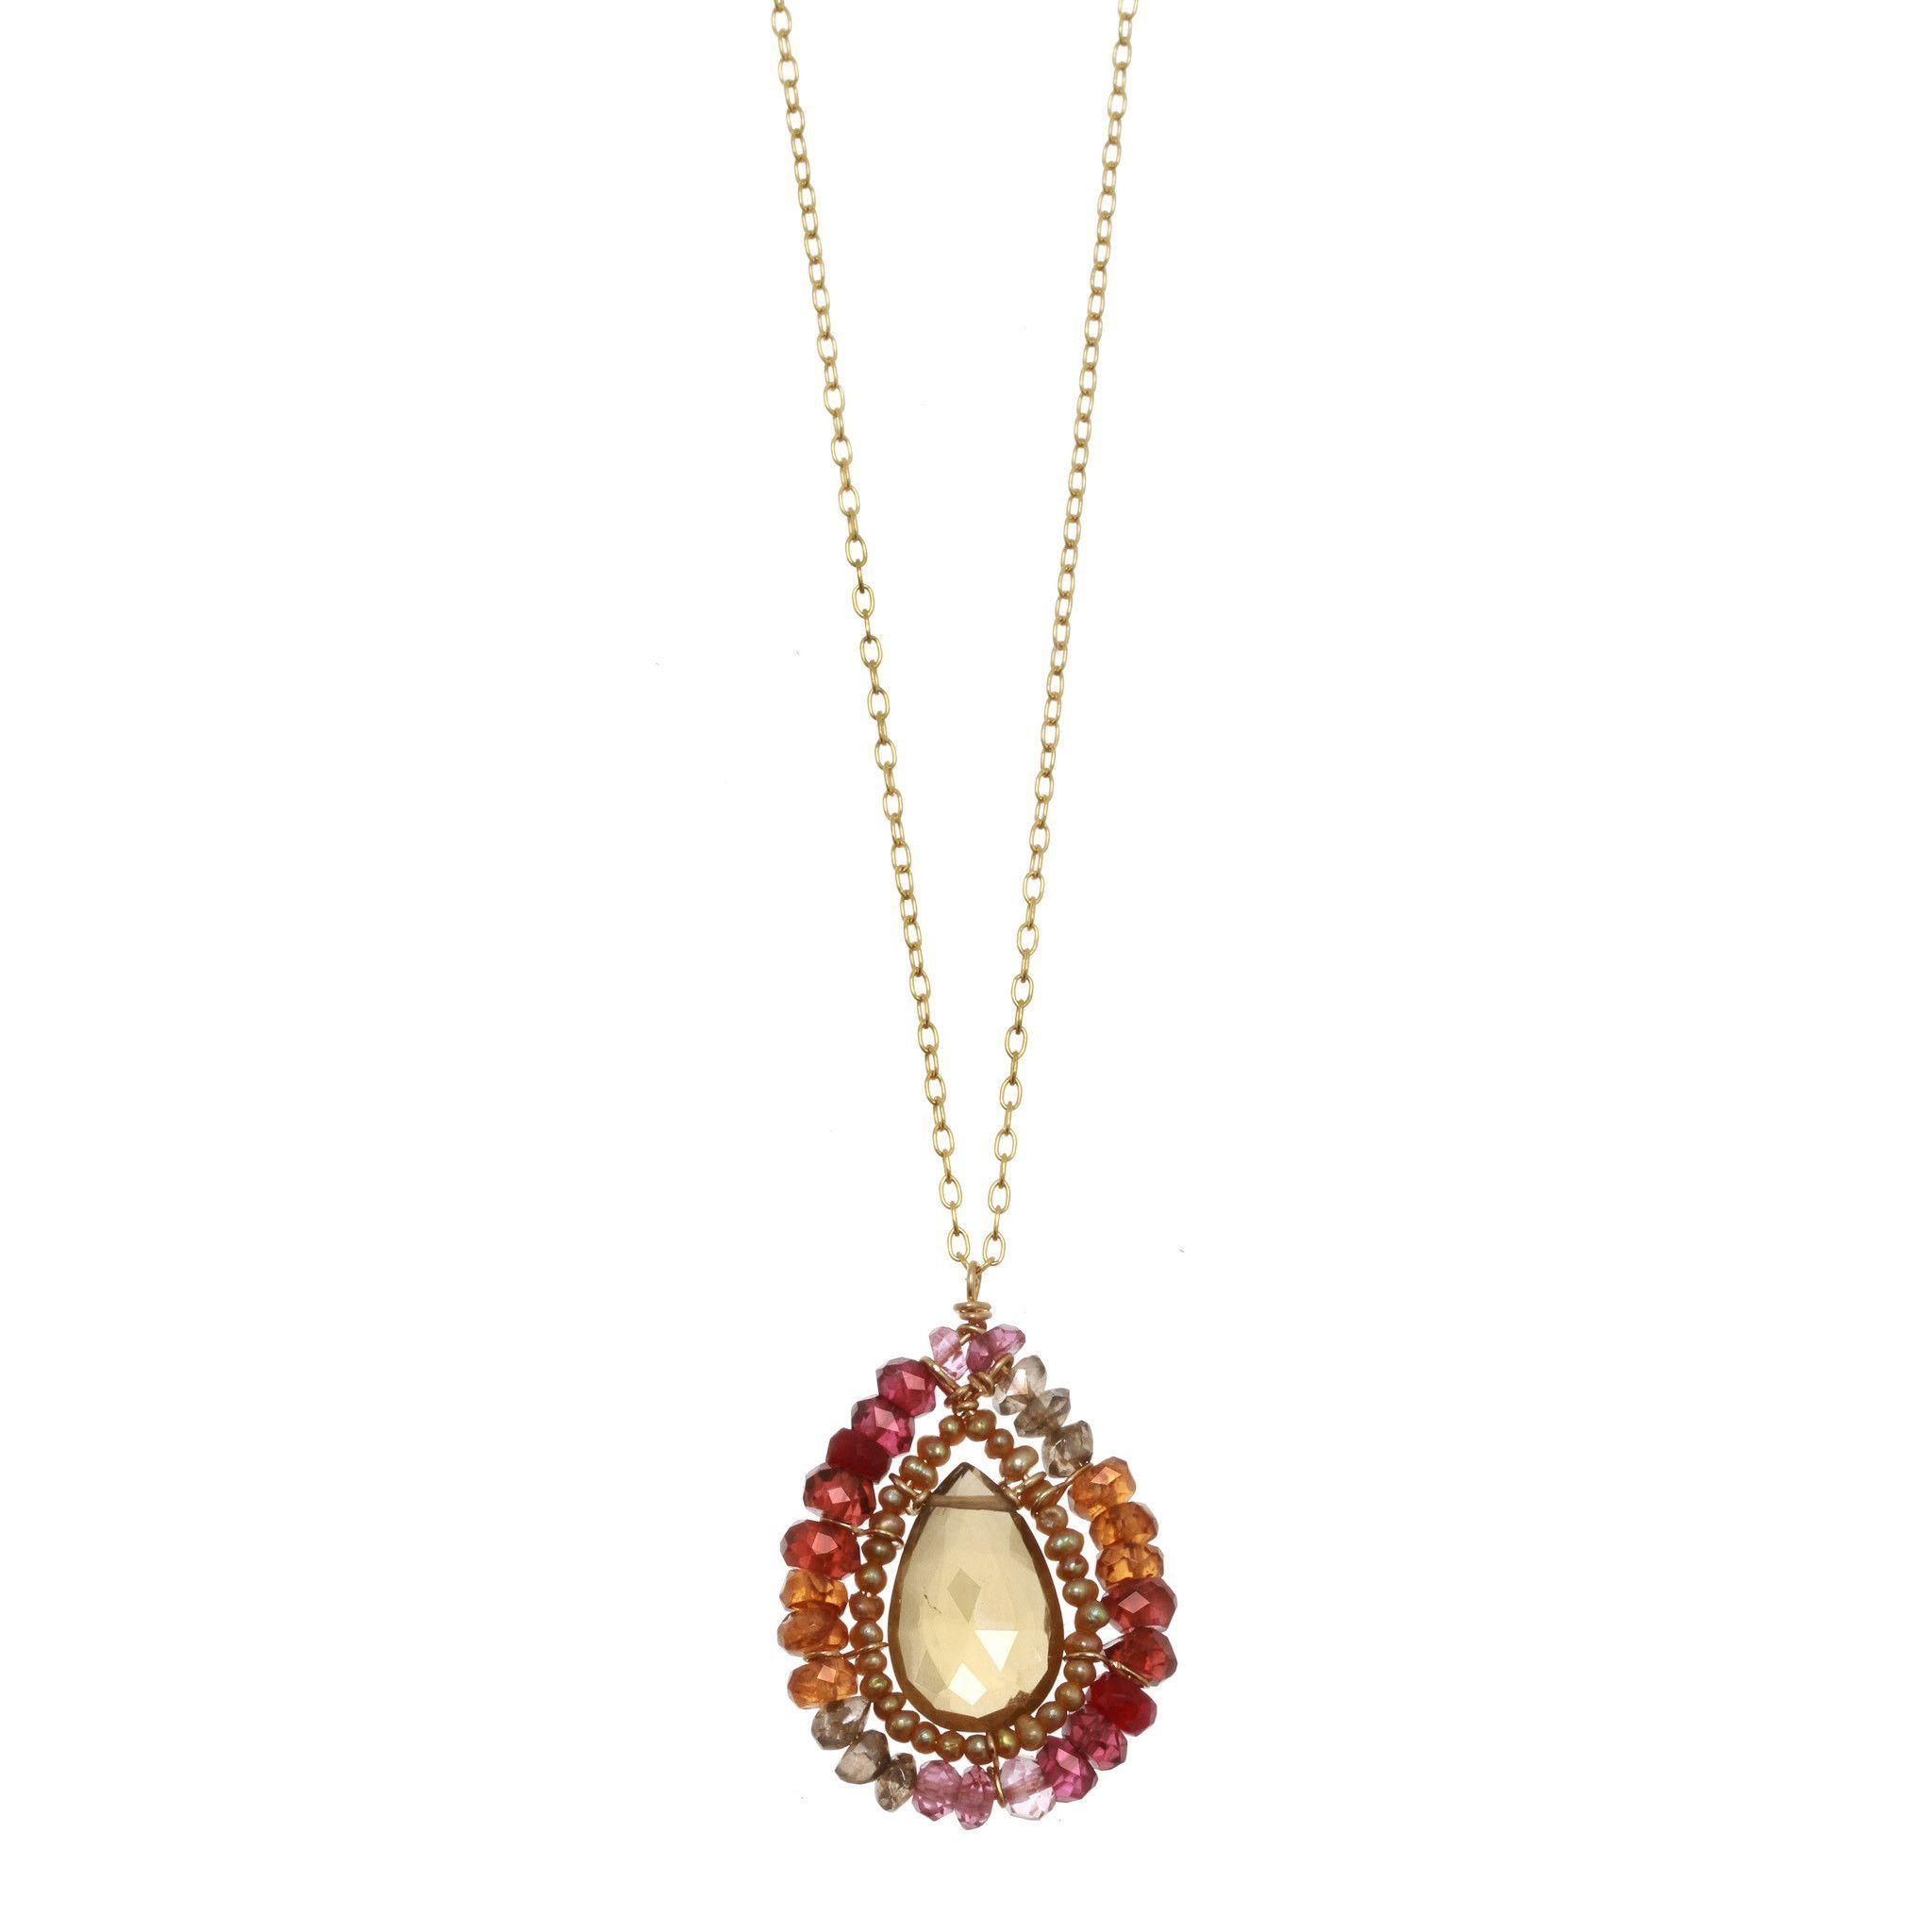 Michelle Pressler Necklace Whiskey Quartz and Ruby 2357 Artistic